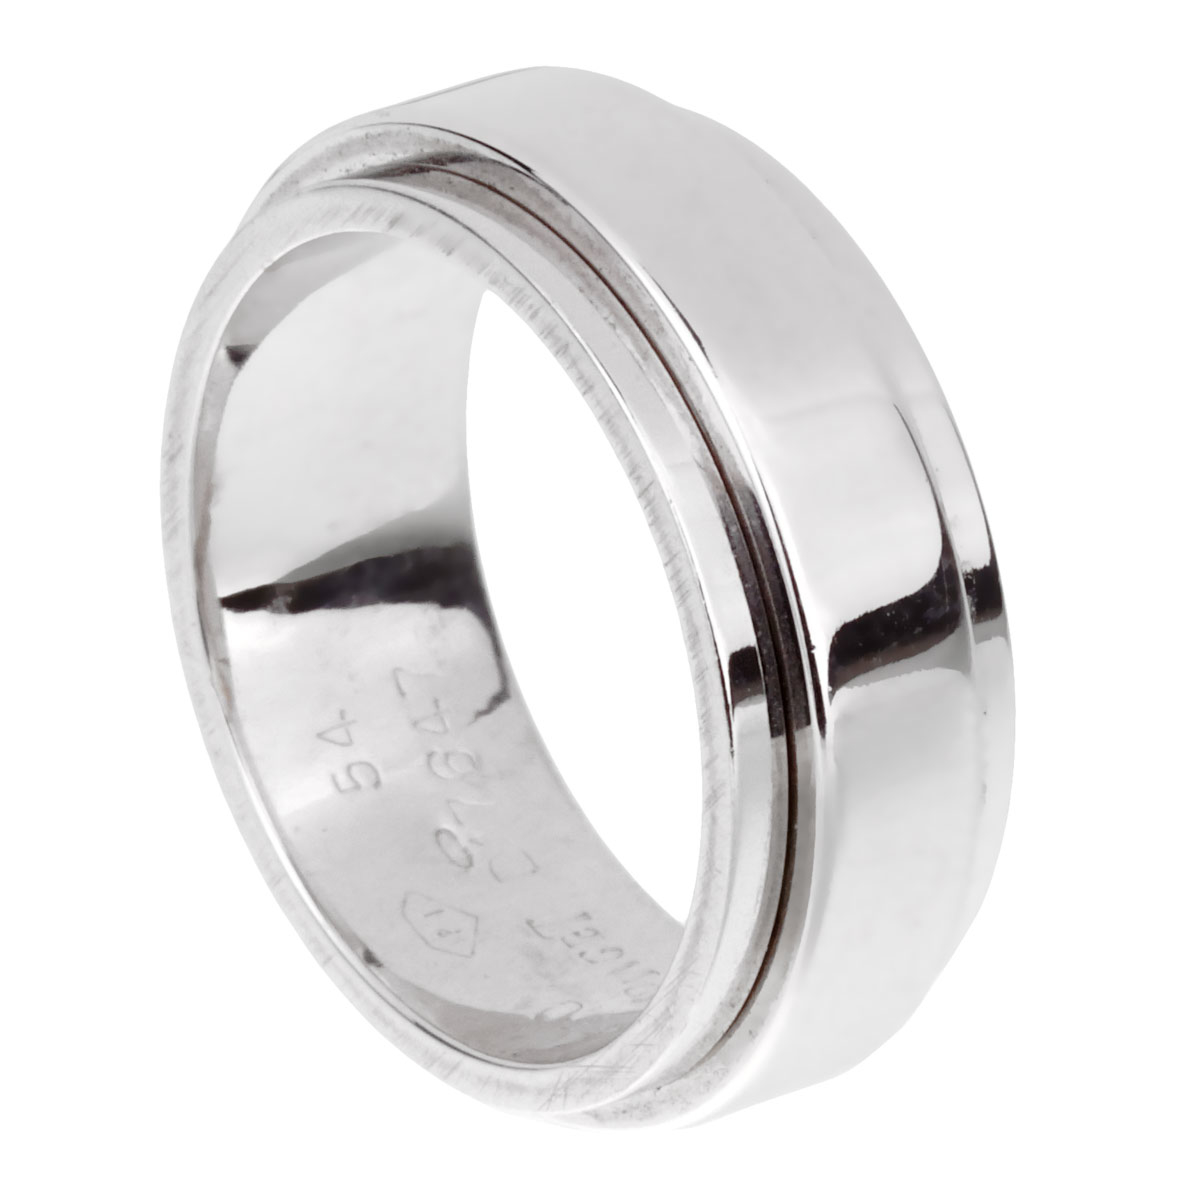 Piaget Possession White Gold Spinning Ring Sz 6 3/4